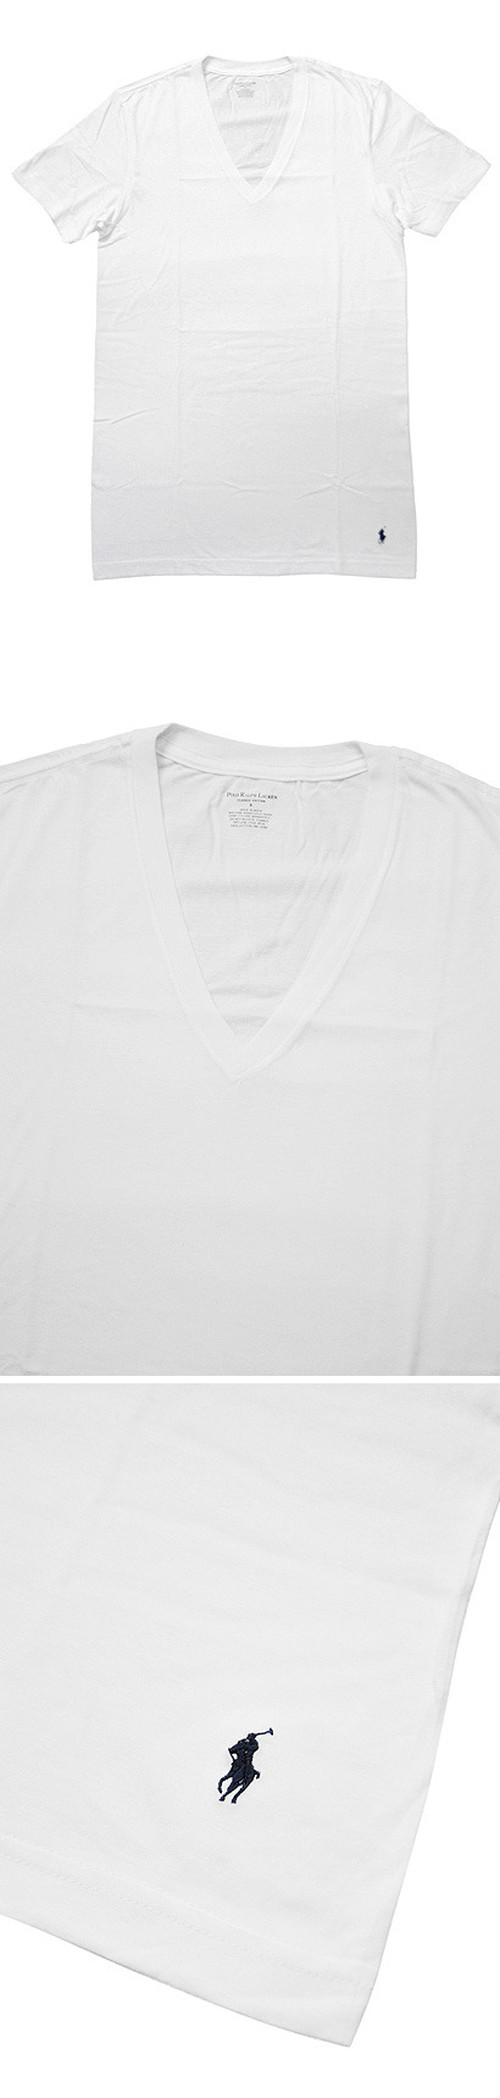 POLO RALPH LAUREN CLASSIC V-NECK Tee WHITE